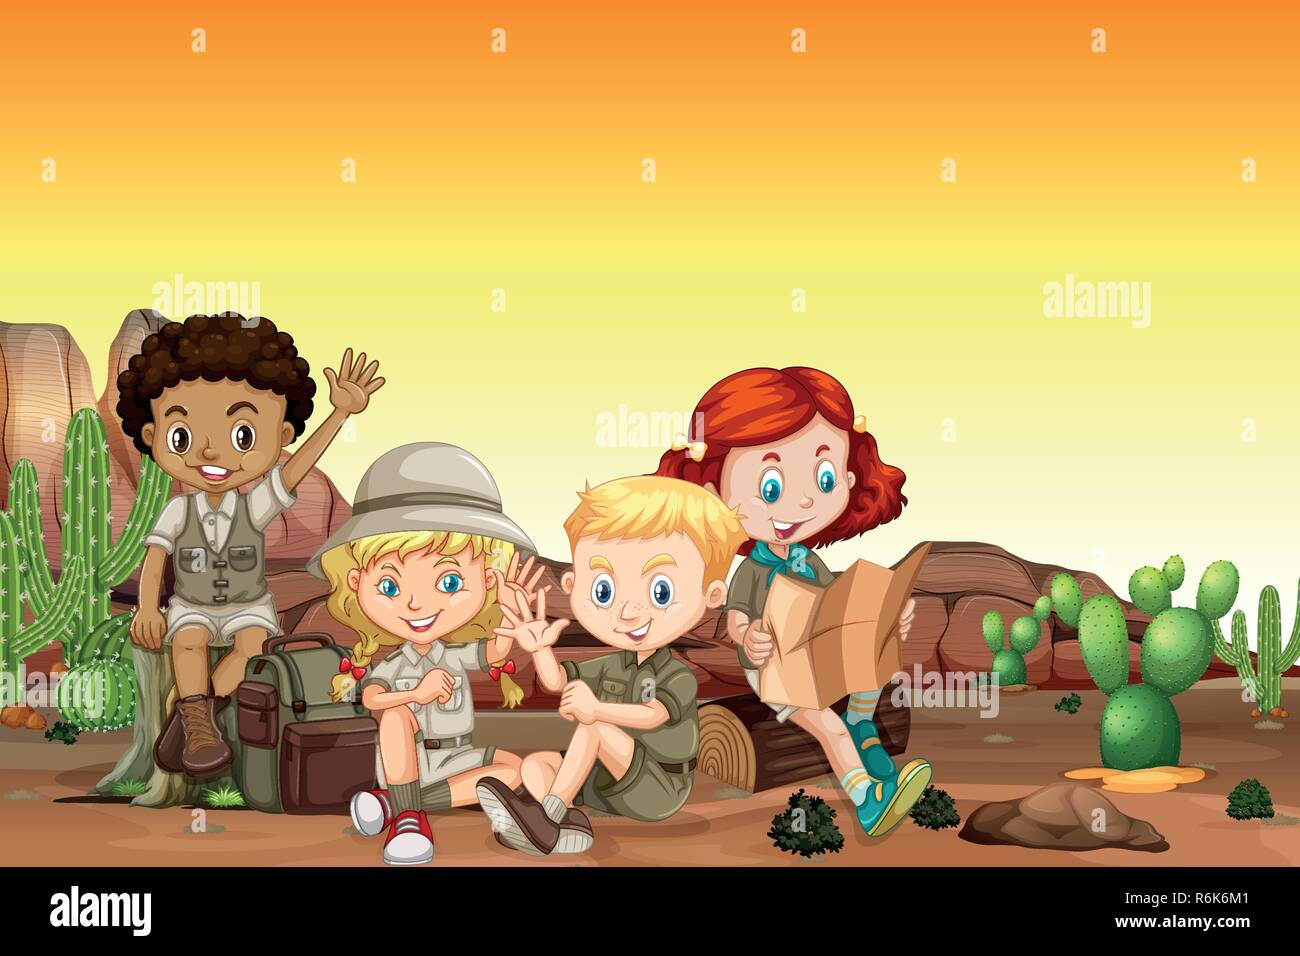 Boy and girl scout at desert illustration - Stock Vector